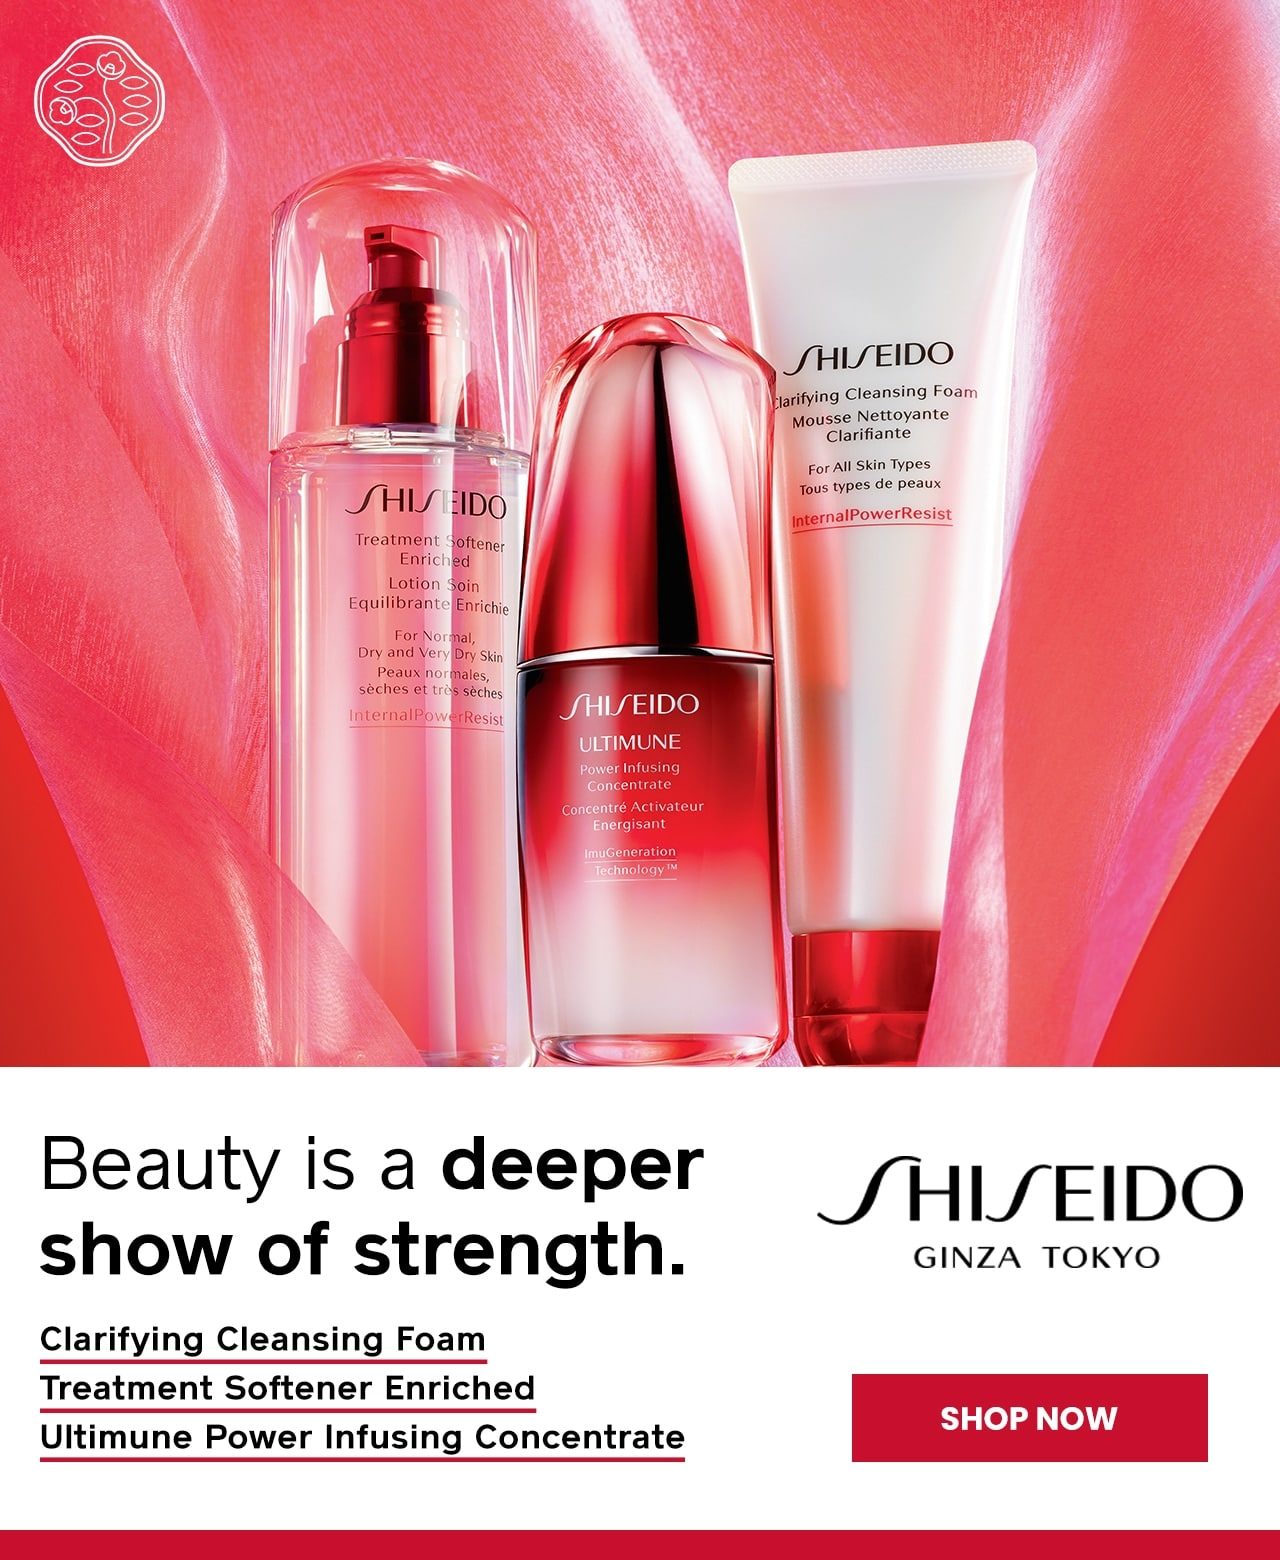 SHISEIDO Defend Beauty